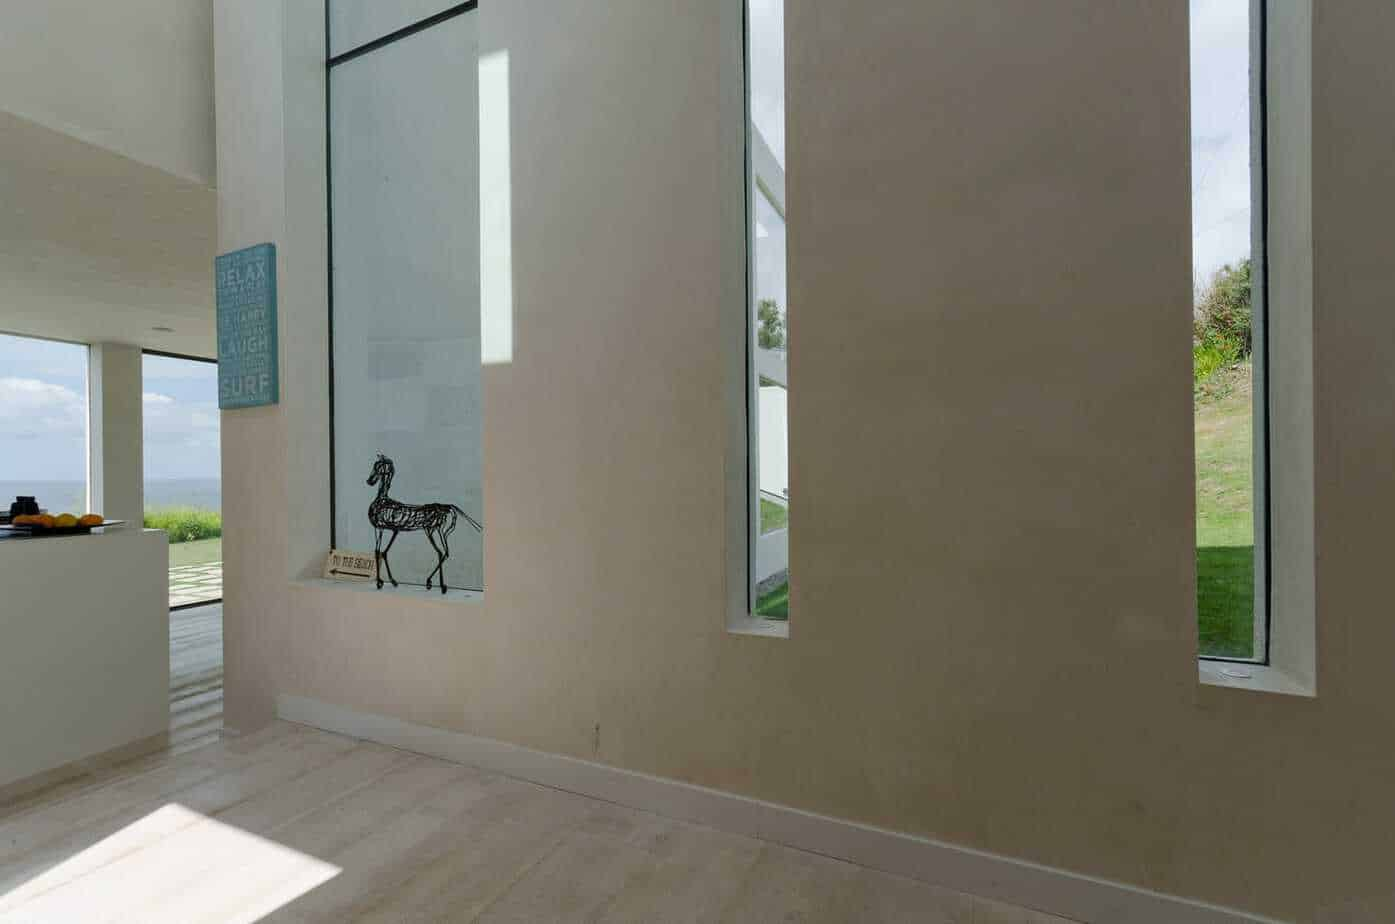 thin long frameless architectural windows